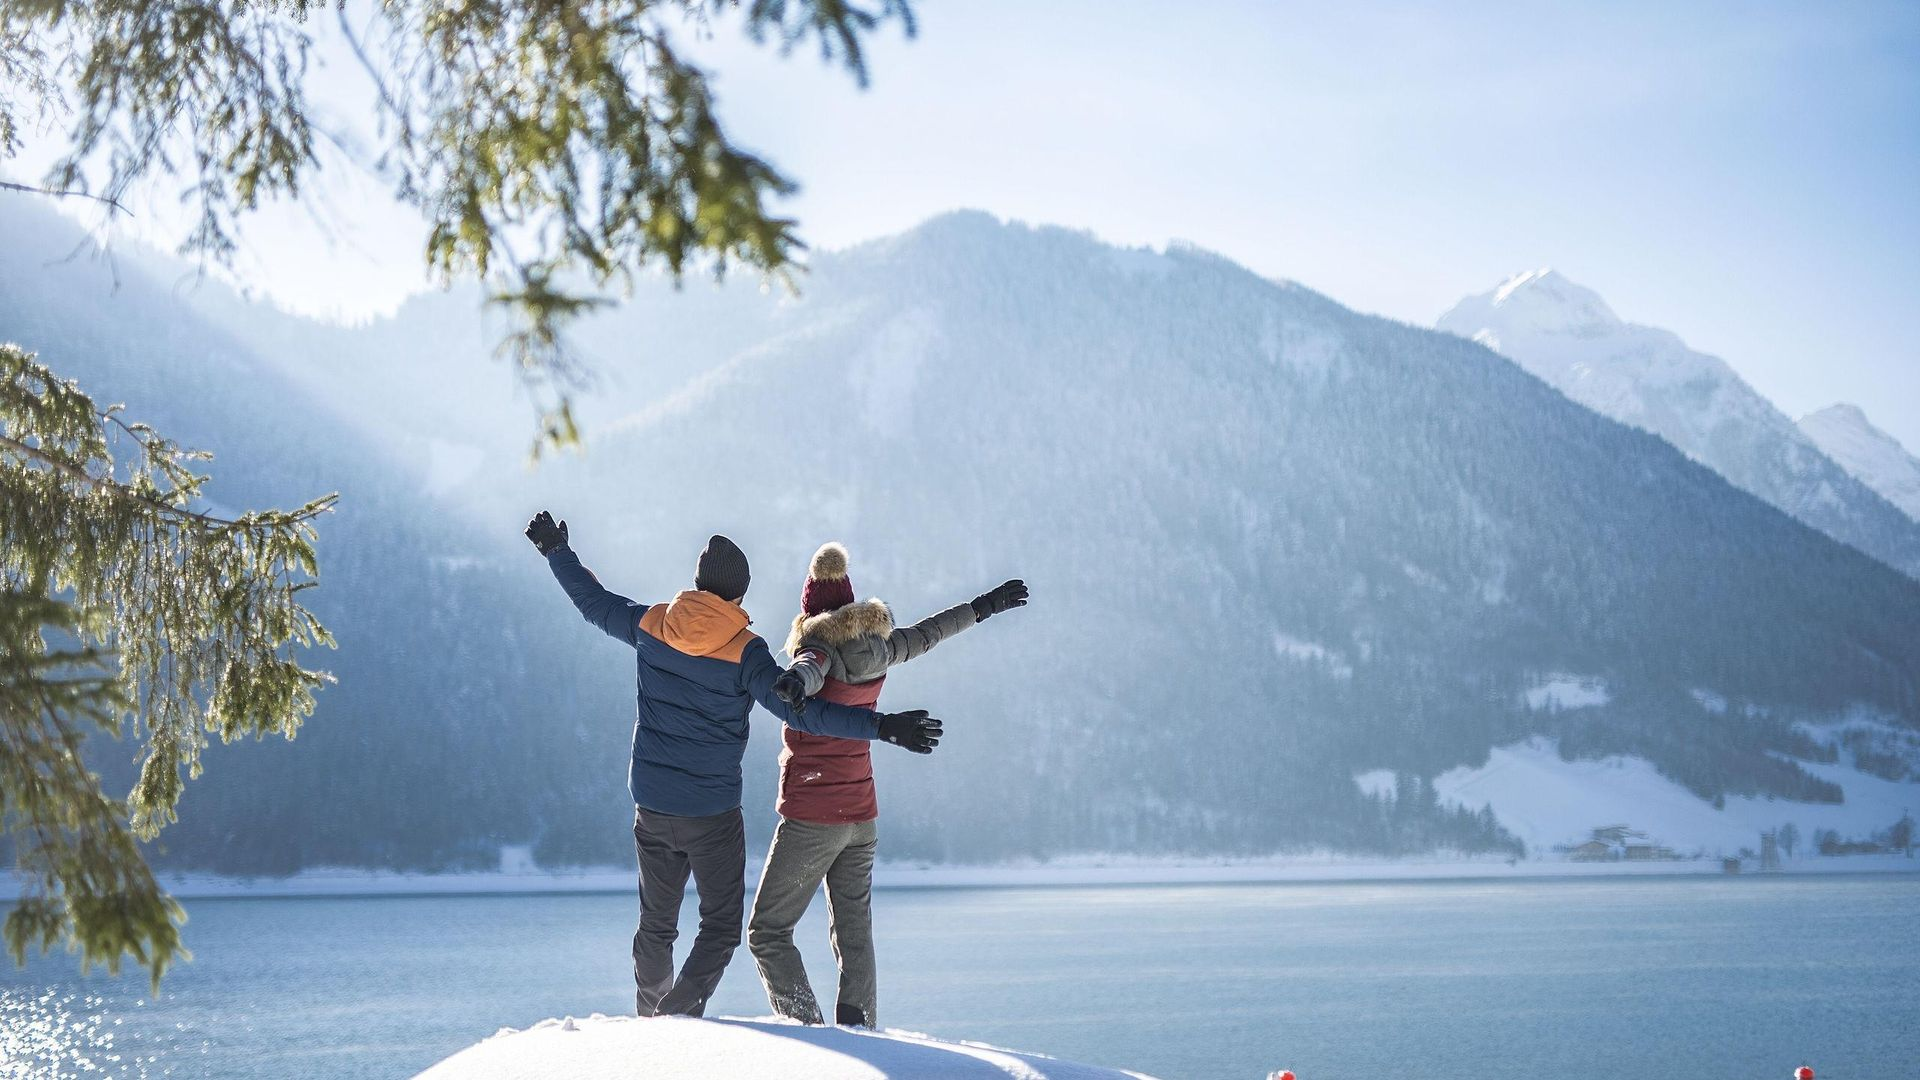 Experience winter together at Lake Achensee in Maurach